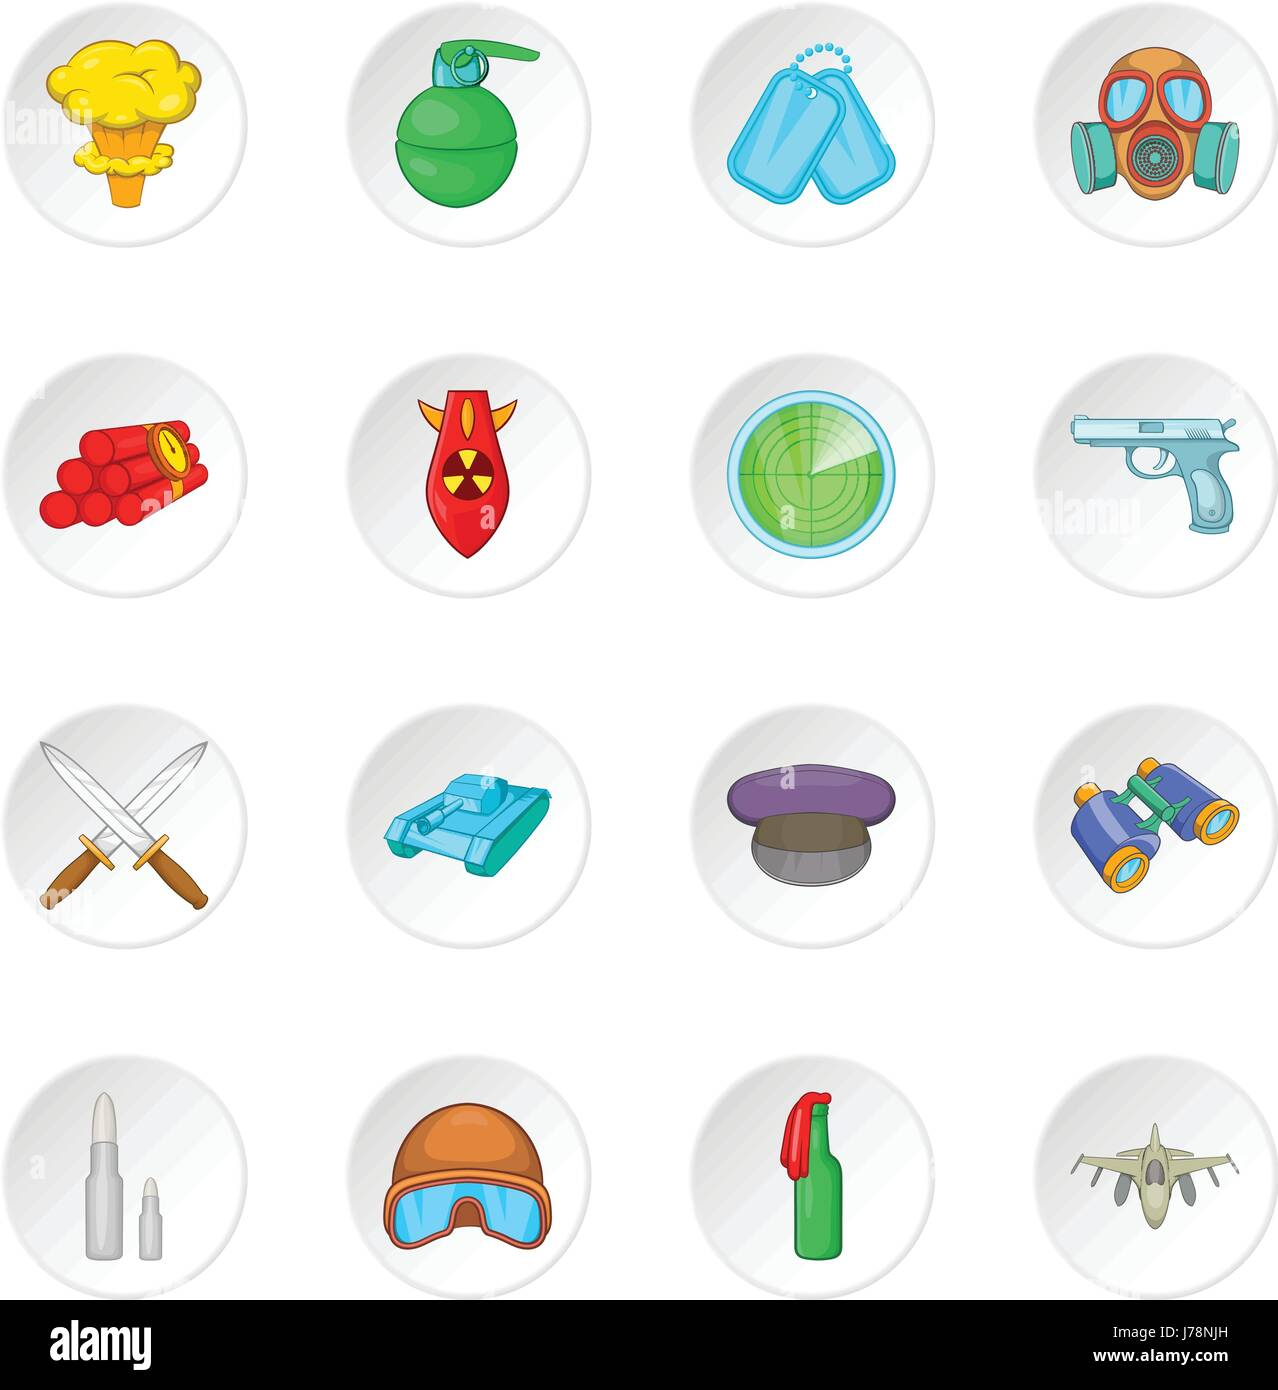 War icons set in cartoon style. Military equipment set collection vector illustration - Stock Image